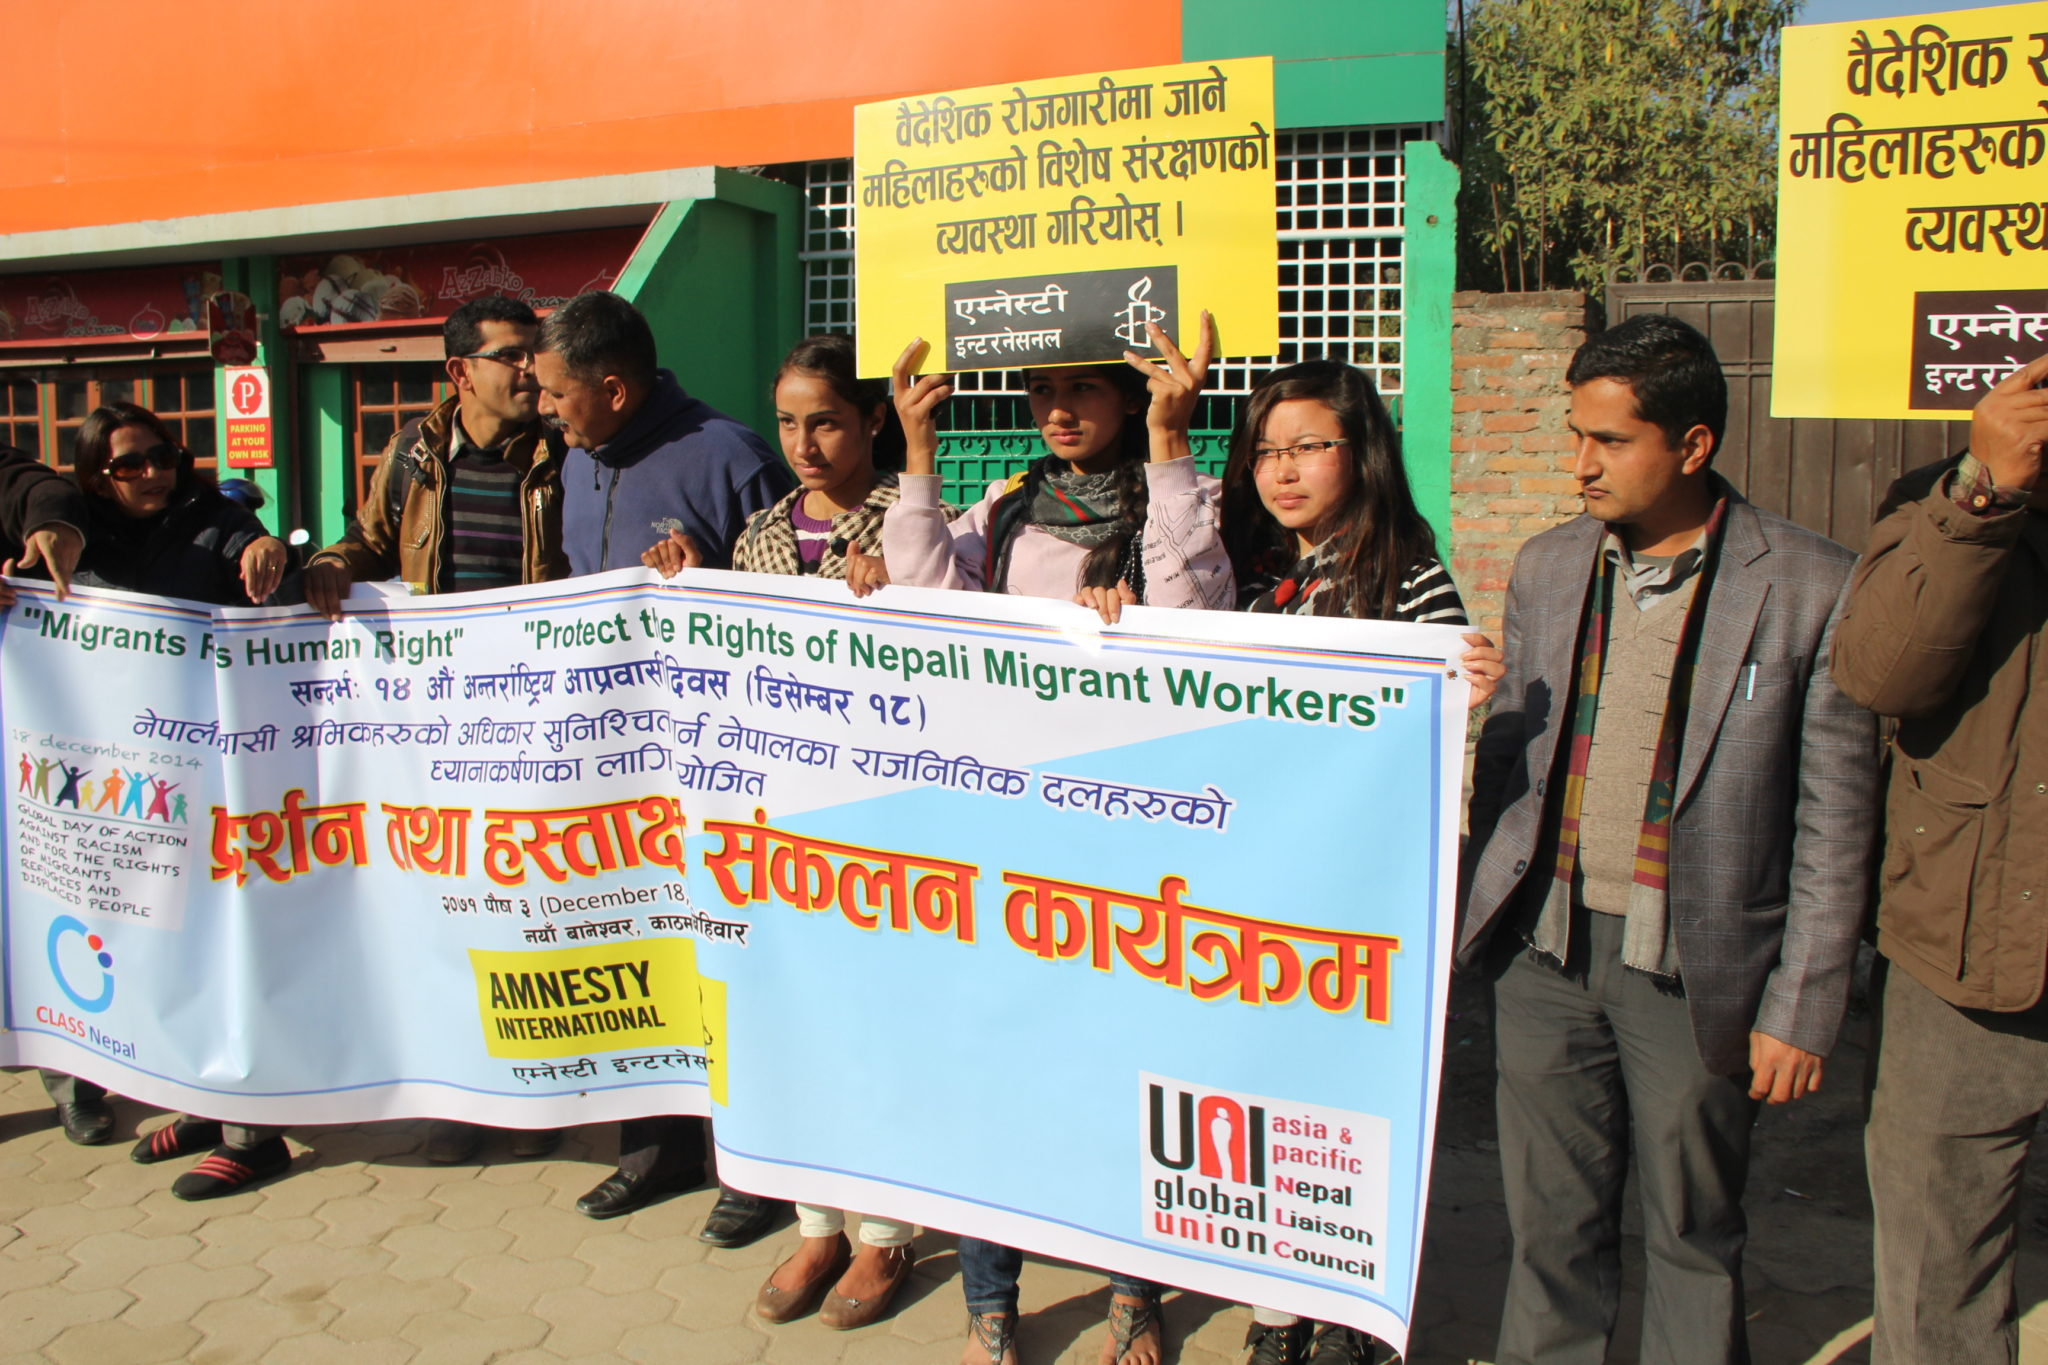 Turning People into Profits: Abusive Recruitment, Trafficking and Forced Labour of Nepali Migrant Workers